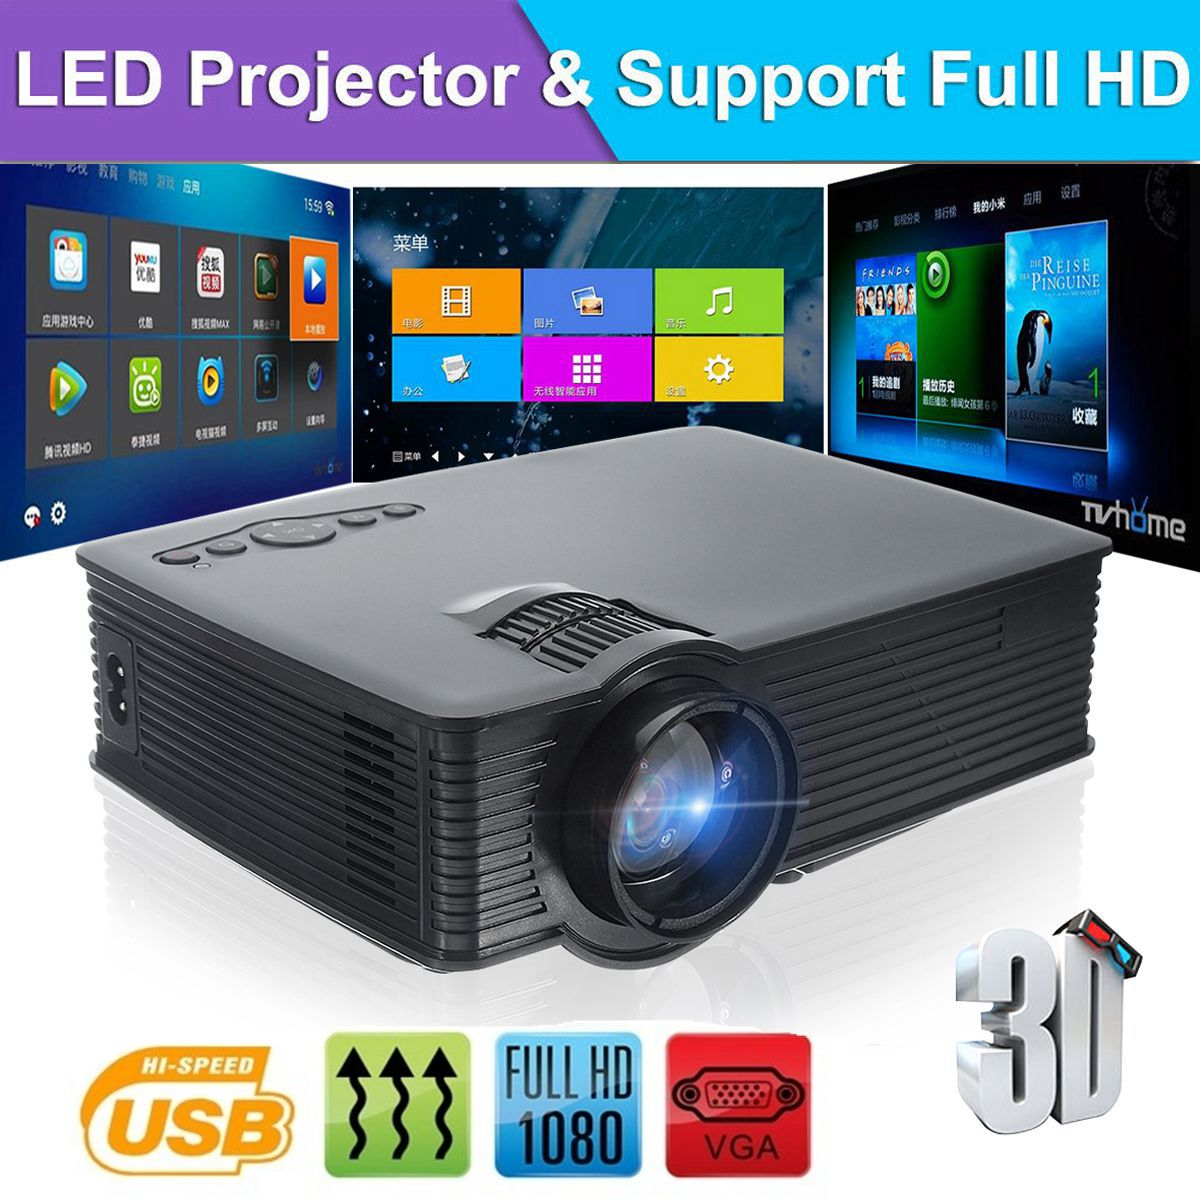 Portable 3000 Lumens HD 1080P 3D Multimedia Projector Home Theatre System LED Home Theater HDMI USBPortable 3000 Lumens HD 1080P 3D Multimedia Projector Home Theatre System LED Home Theater HDMI USB